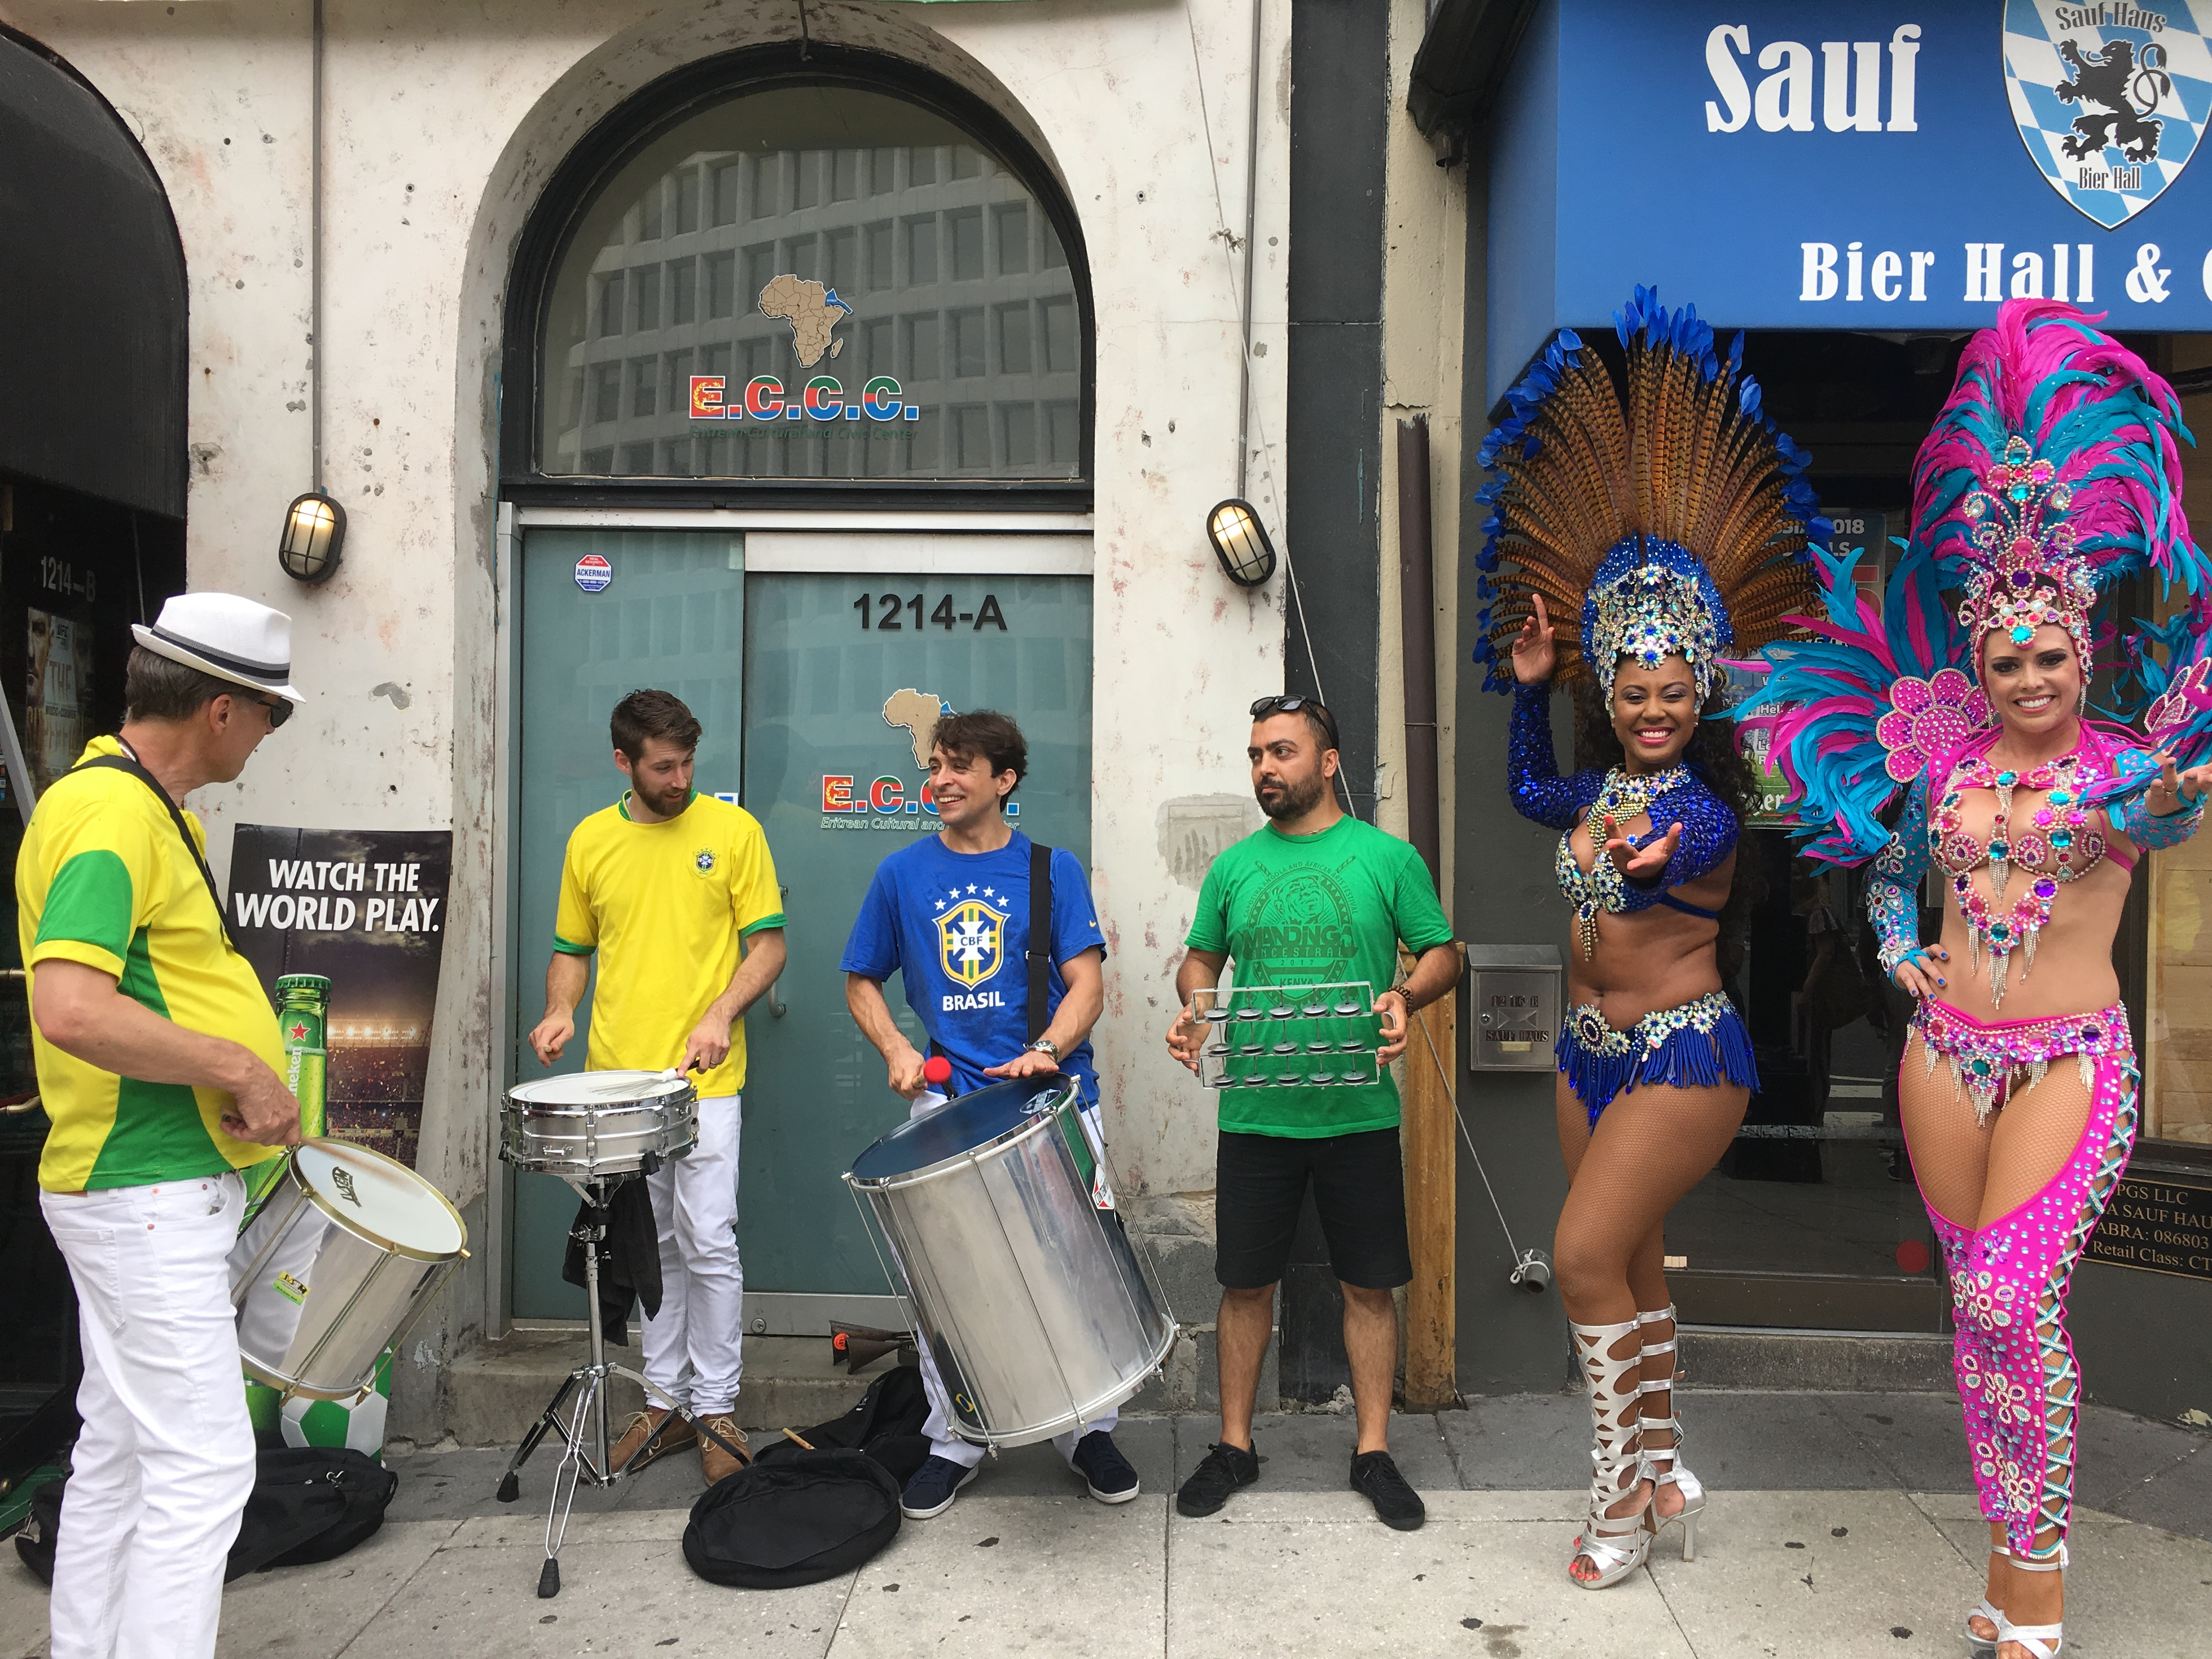 Dancing and drumming outside of Public Bar before the game